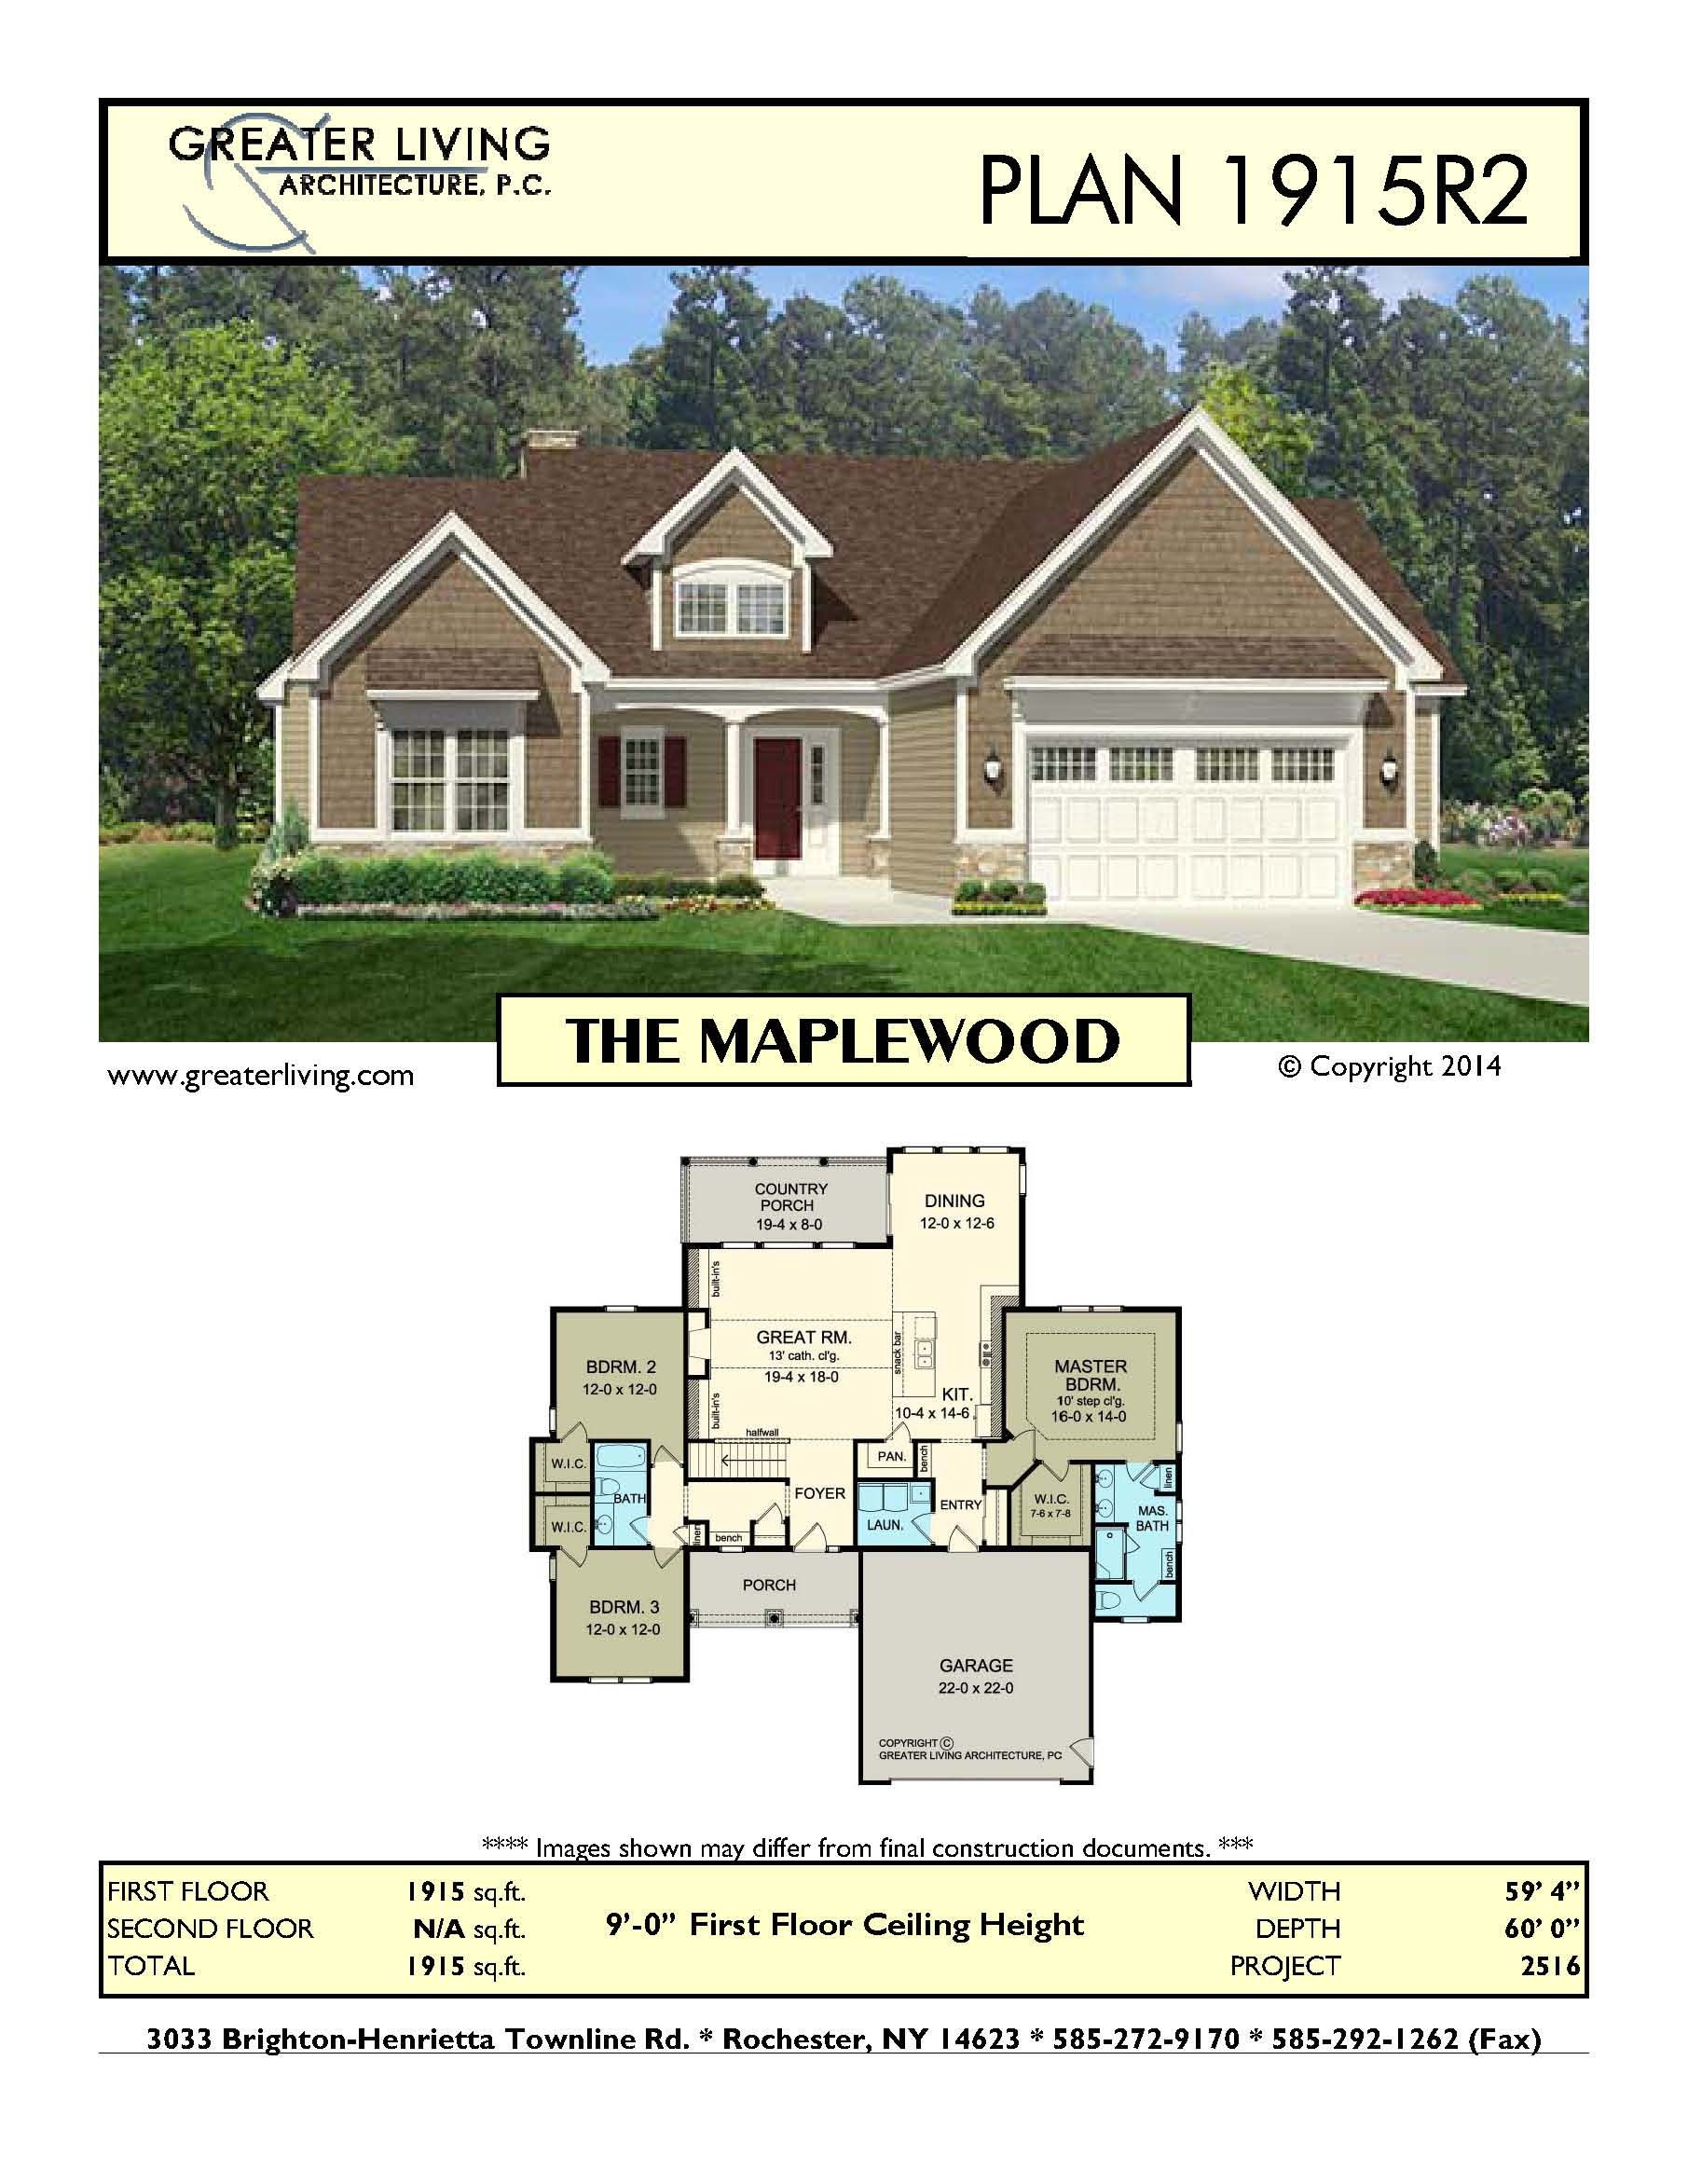 Plan 1915R2: THE MAPLEWOOD - Ranch House Plan - Greater Living ... on texas style architecture, american colonial, commercial architecture, cabin architecture, mediterranean architecture, american foursquare, russian architecture, a-frame house, rustic architecture, victorian house, california coastal architecture, american craftsman, federal architecture, mid-century modern, shotgun house, windmill architecture, a-frame architecture, cape cod, jamaica architecture, mill architecture, patio home, early california architecture, postmodern architecture, sea architecture, country architecture, industrial architecture, monterey revival architecture, split level home,